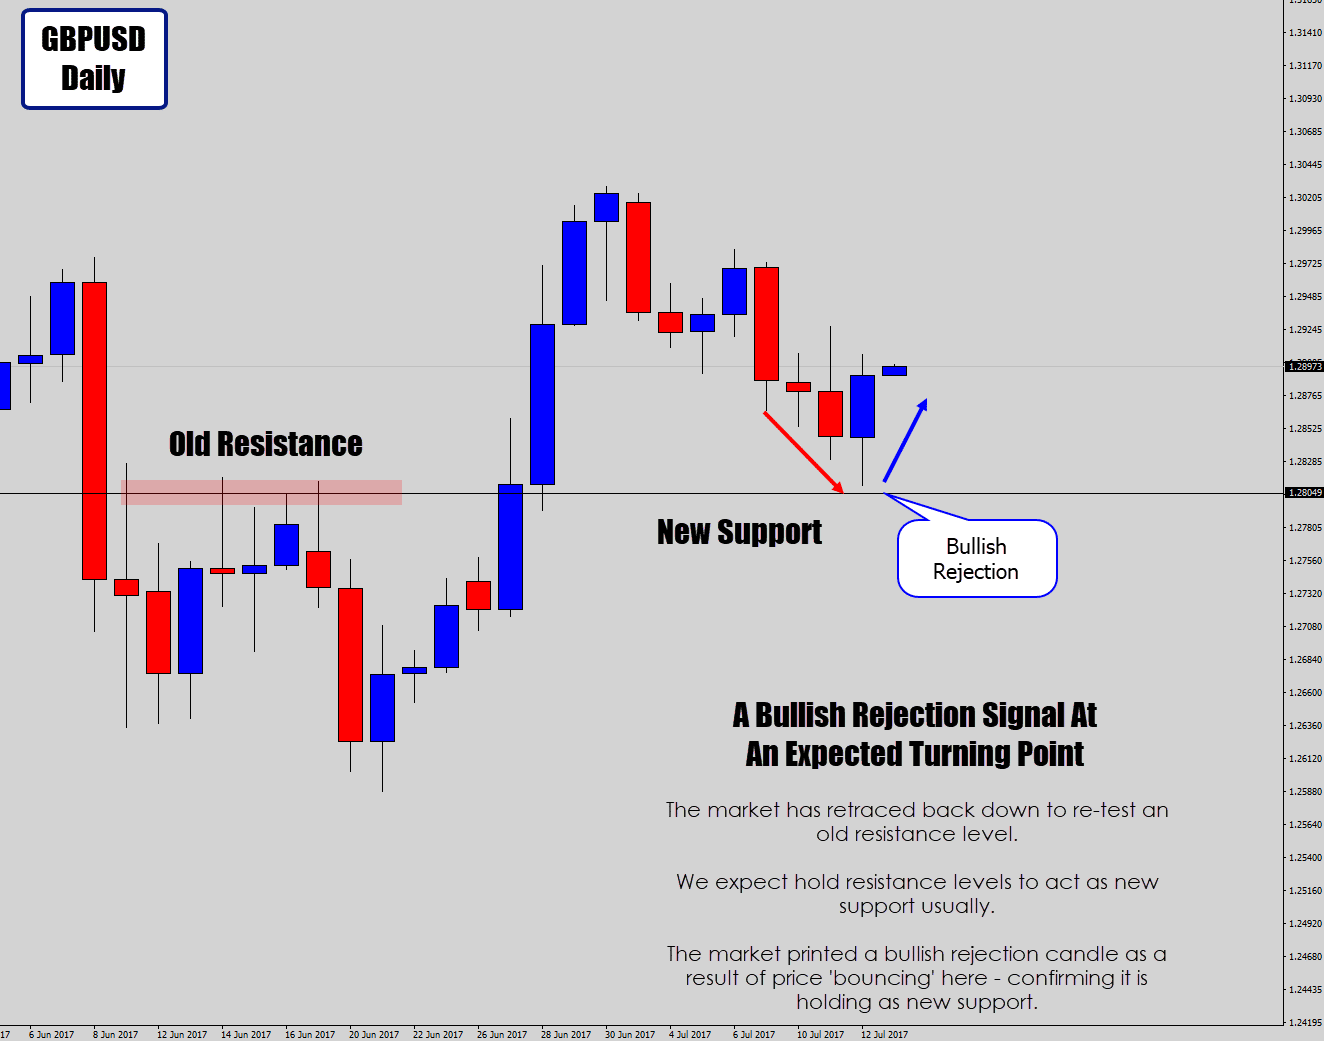 bullish rejection trade signal at new support